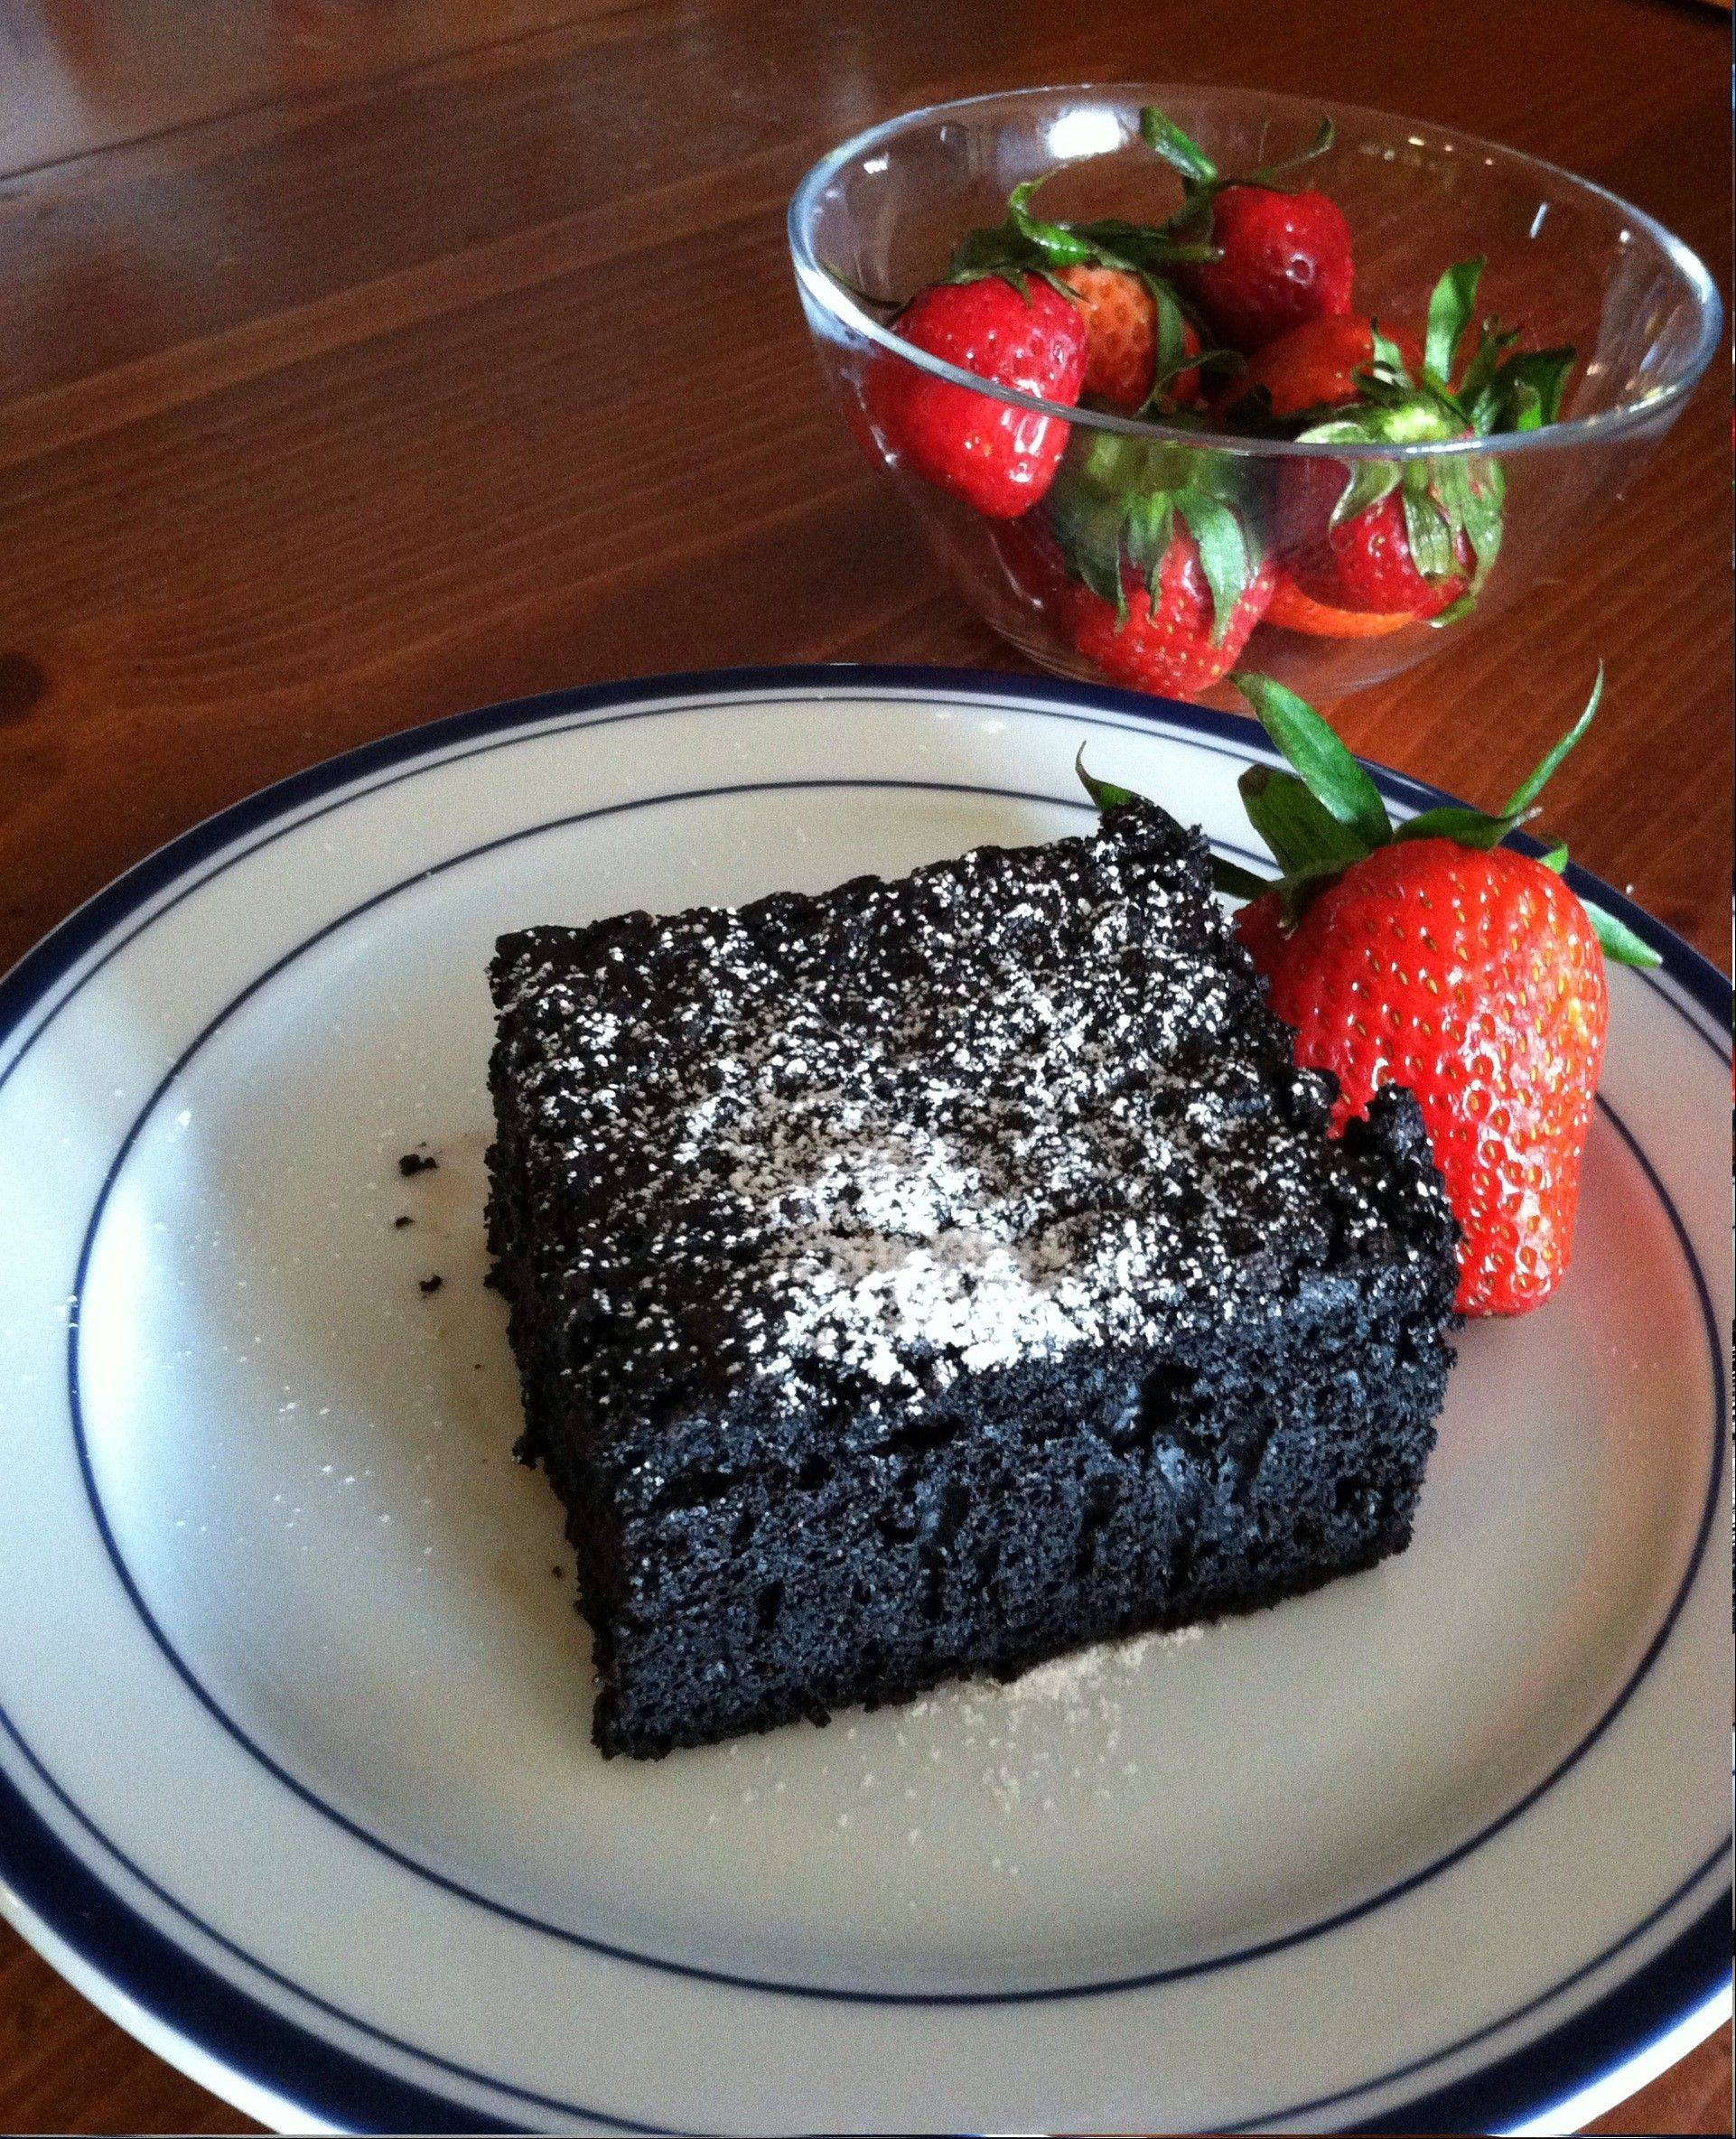 Apple sauce and olive oil keep the fat in check in a rich, dark chocolate cake.